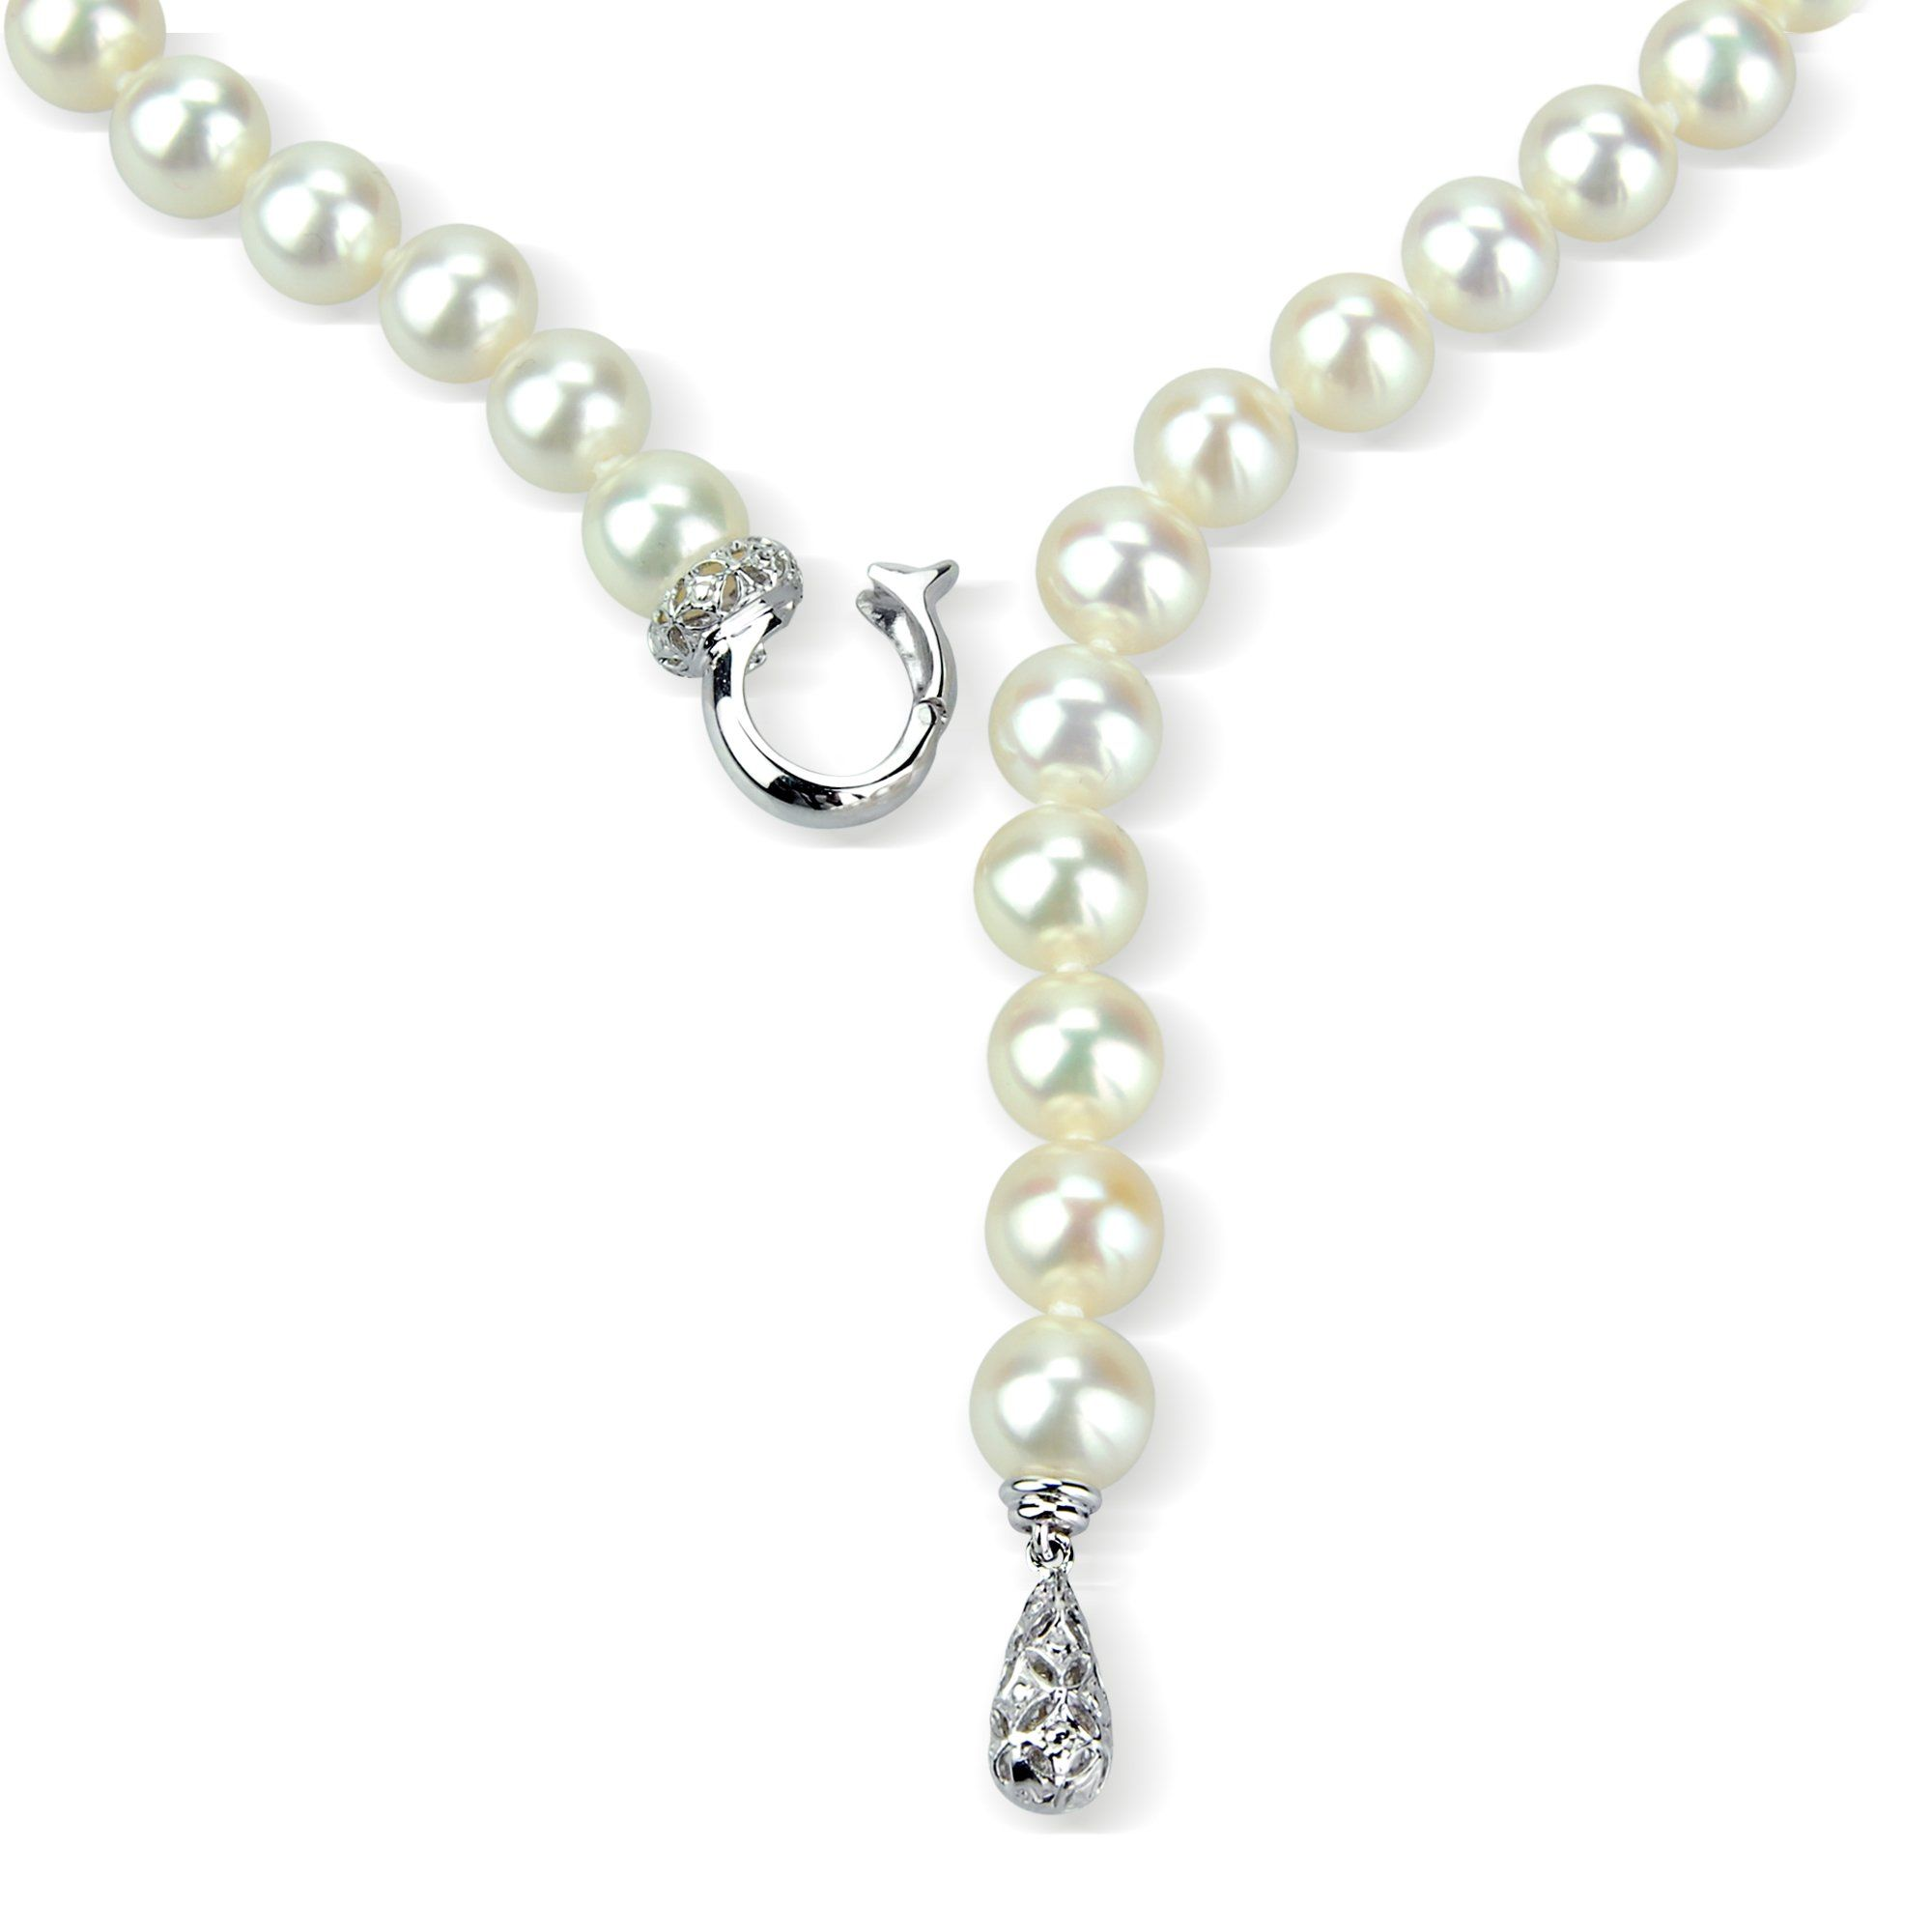 Sterling 20in Silver 7-7.5mm White Freshwater Cultured Pearl Necklace.